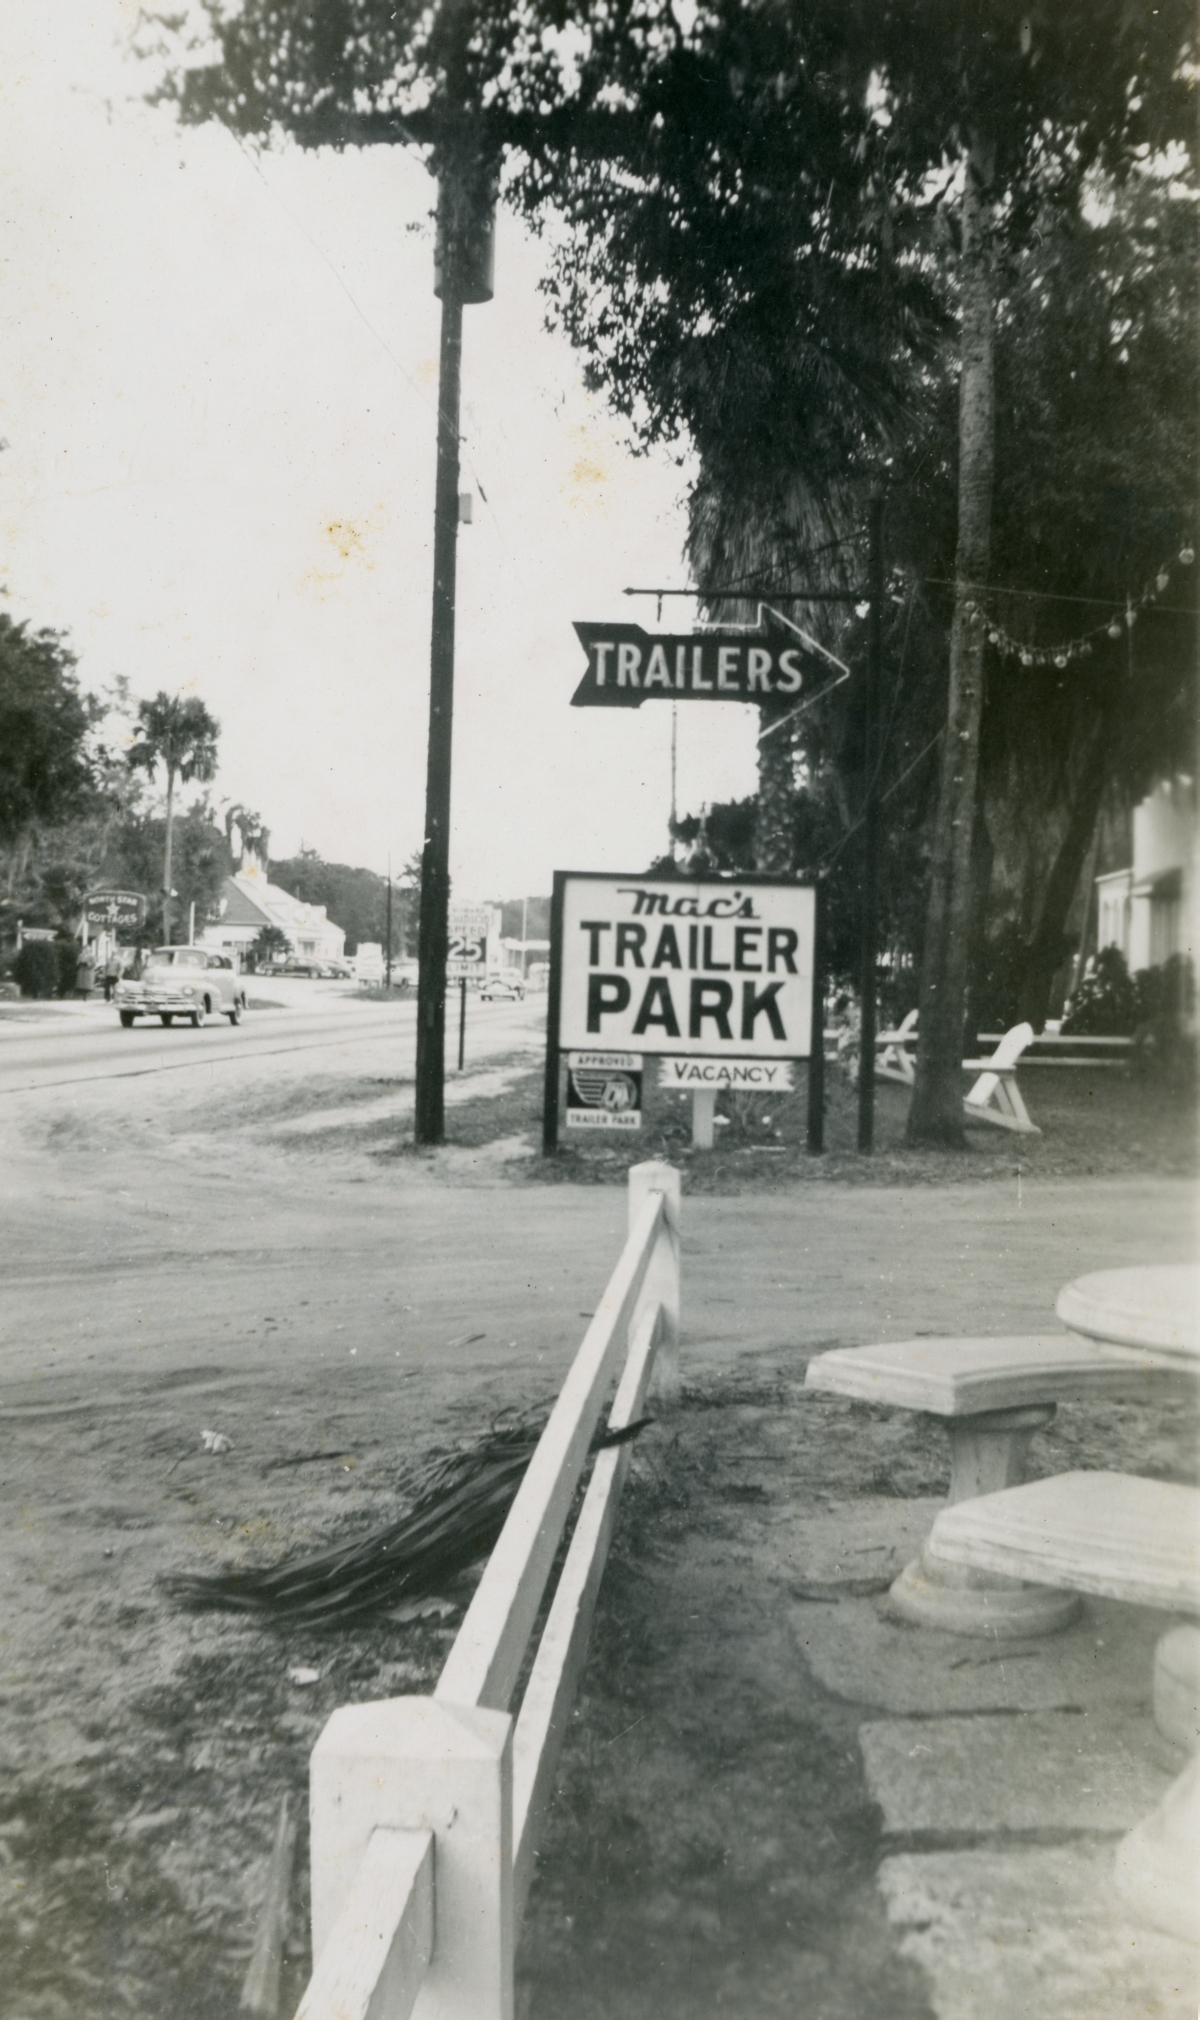 Entrance to Mac's Trailer Park shown during Central Florida vacation of the Hall family from Michigan.